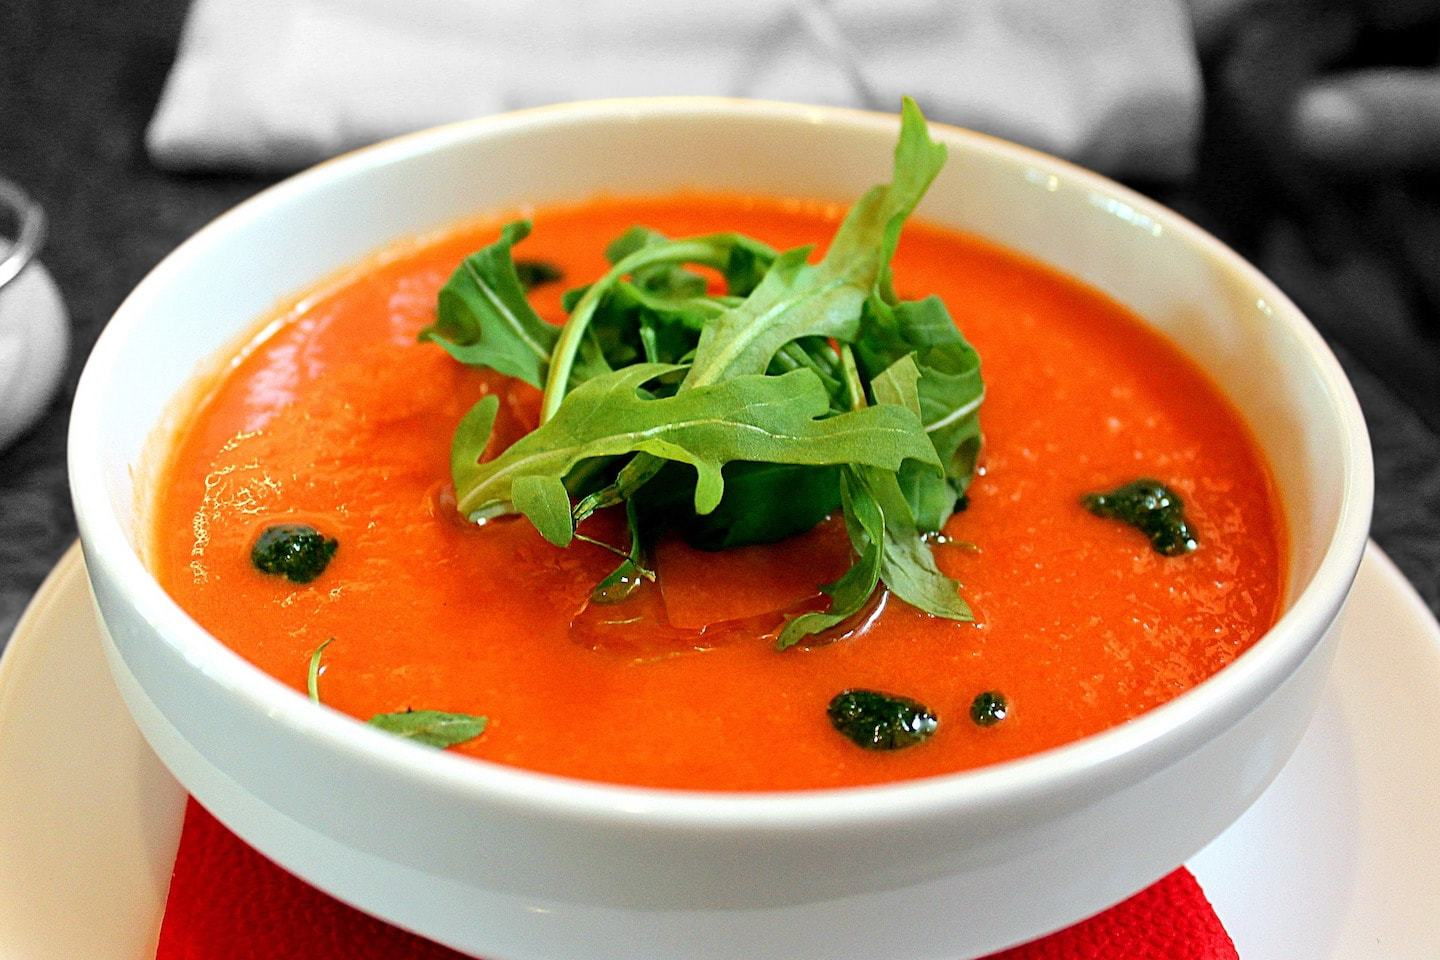 tomato soup with arugula garnish